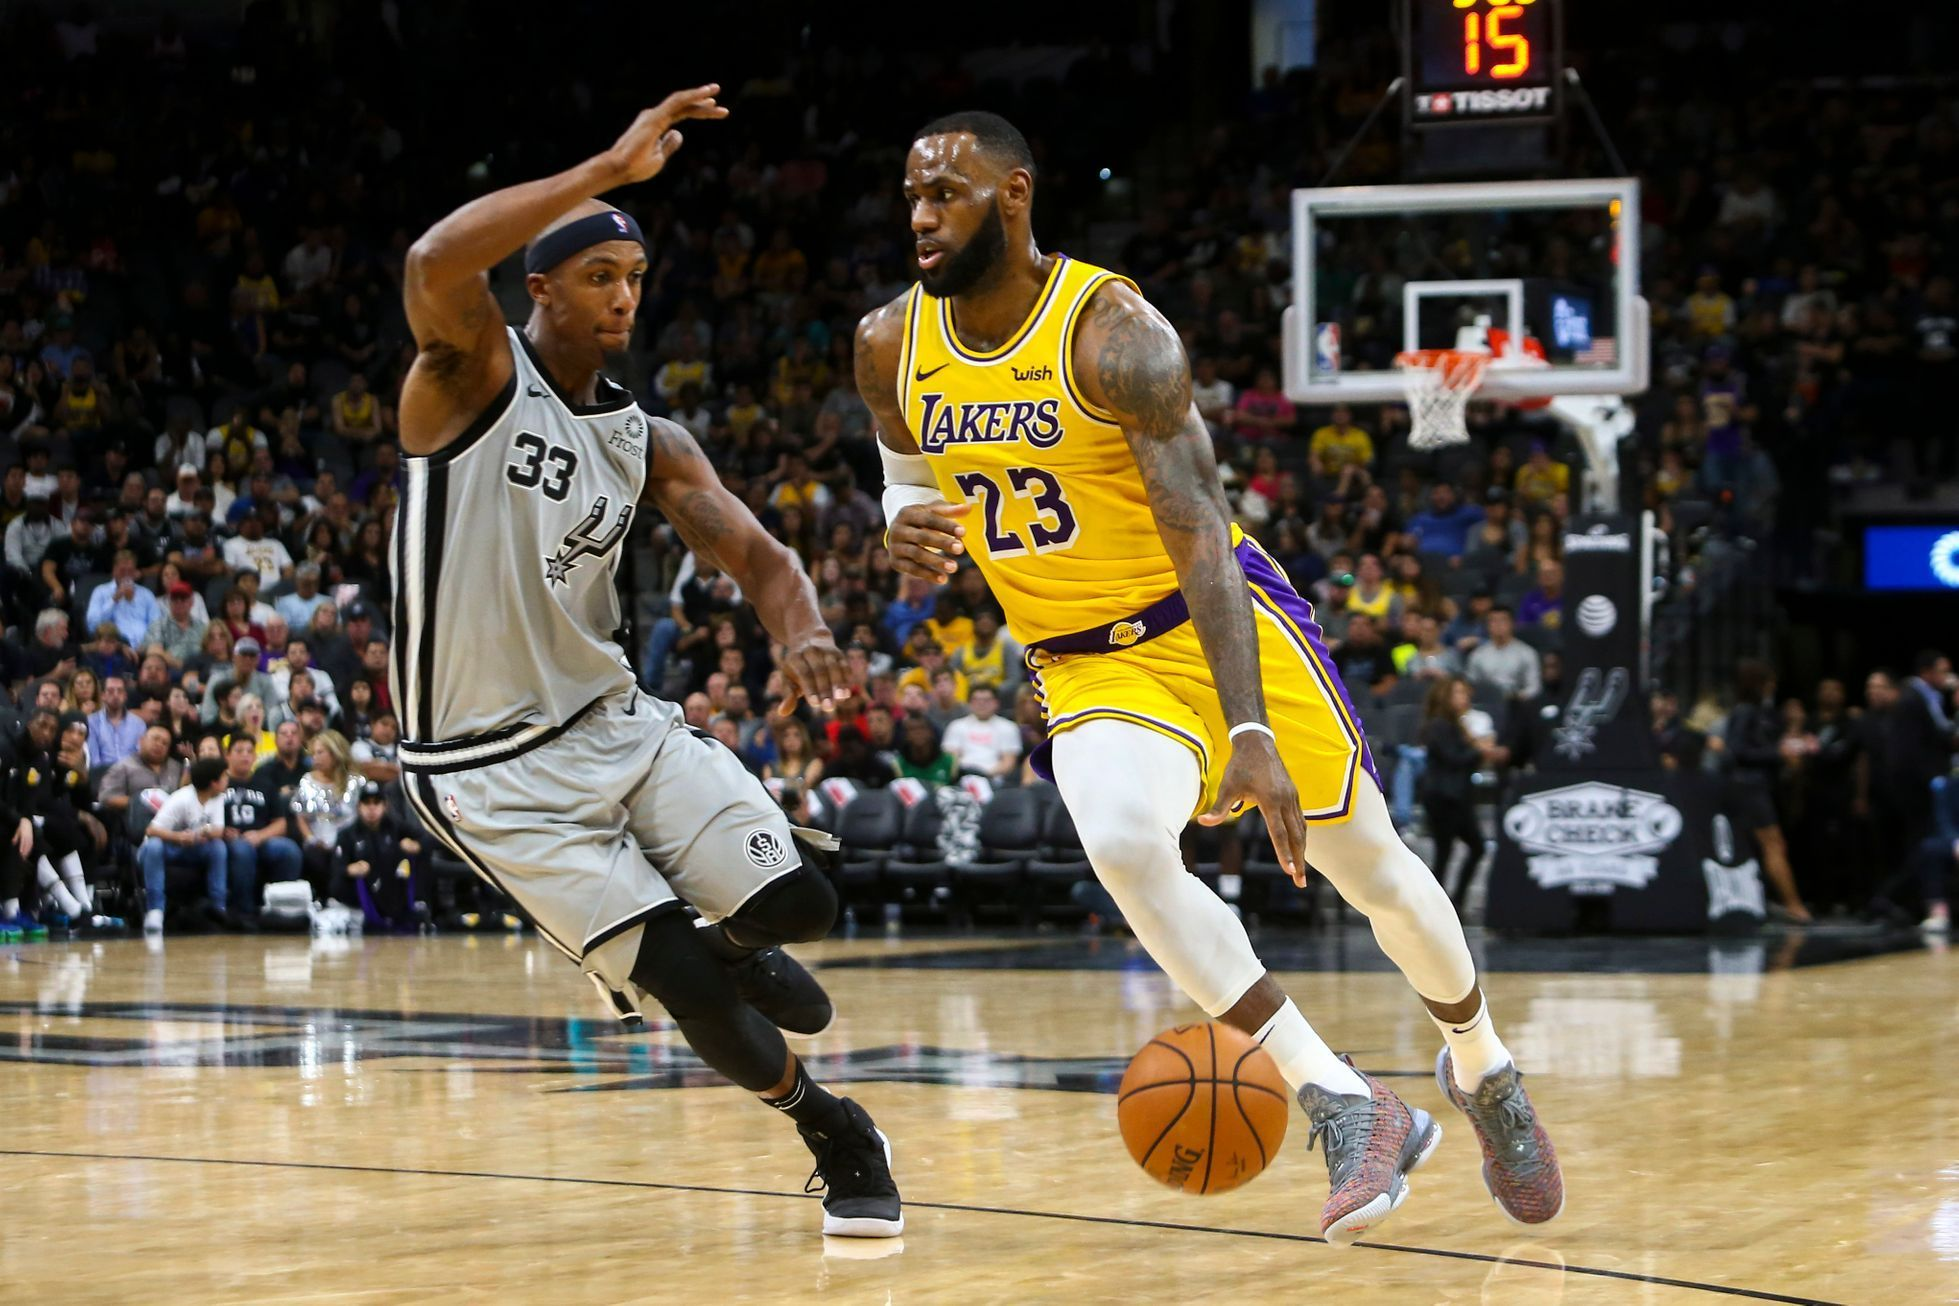 NBA 2018/19: San Antonio - Los Angeles Lakers: Hostující LeBron James proti Dantemu Cunninghamovi